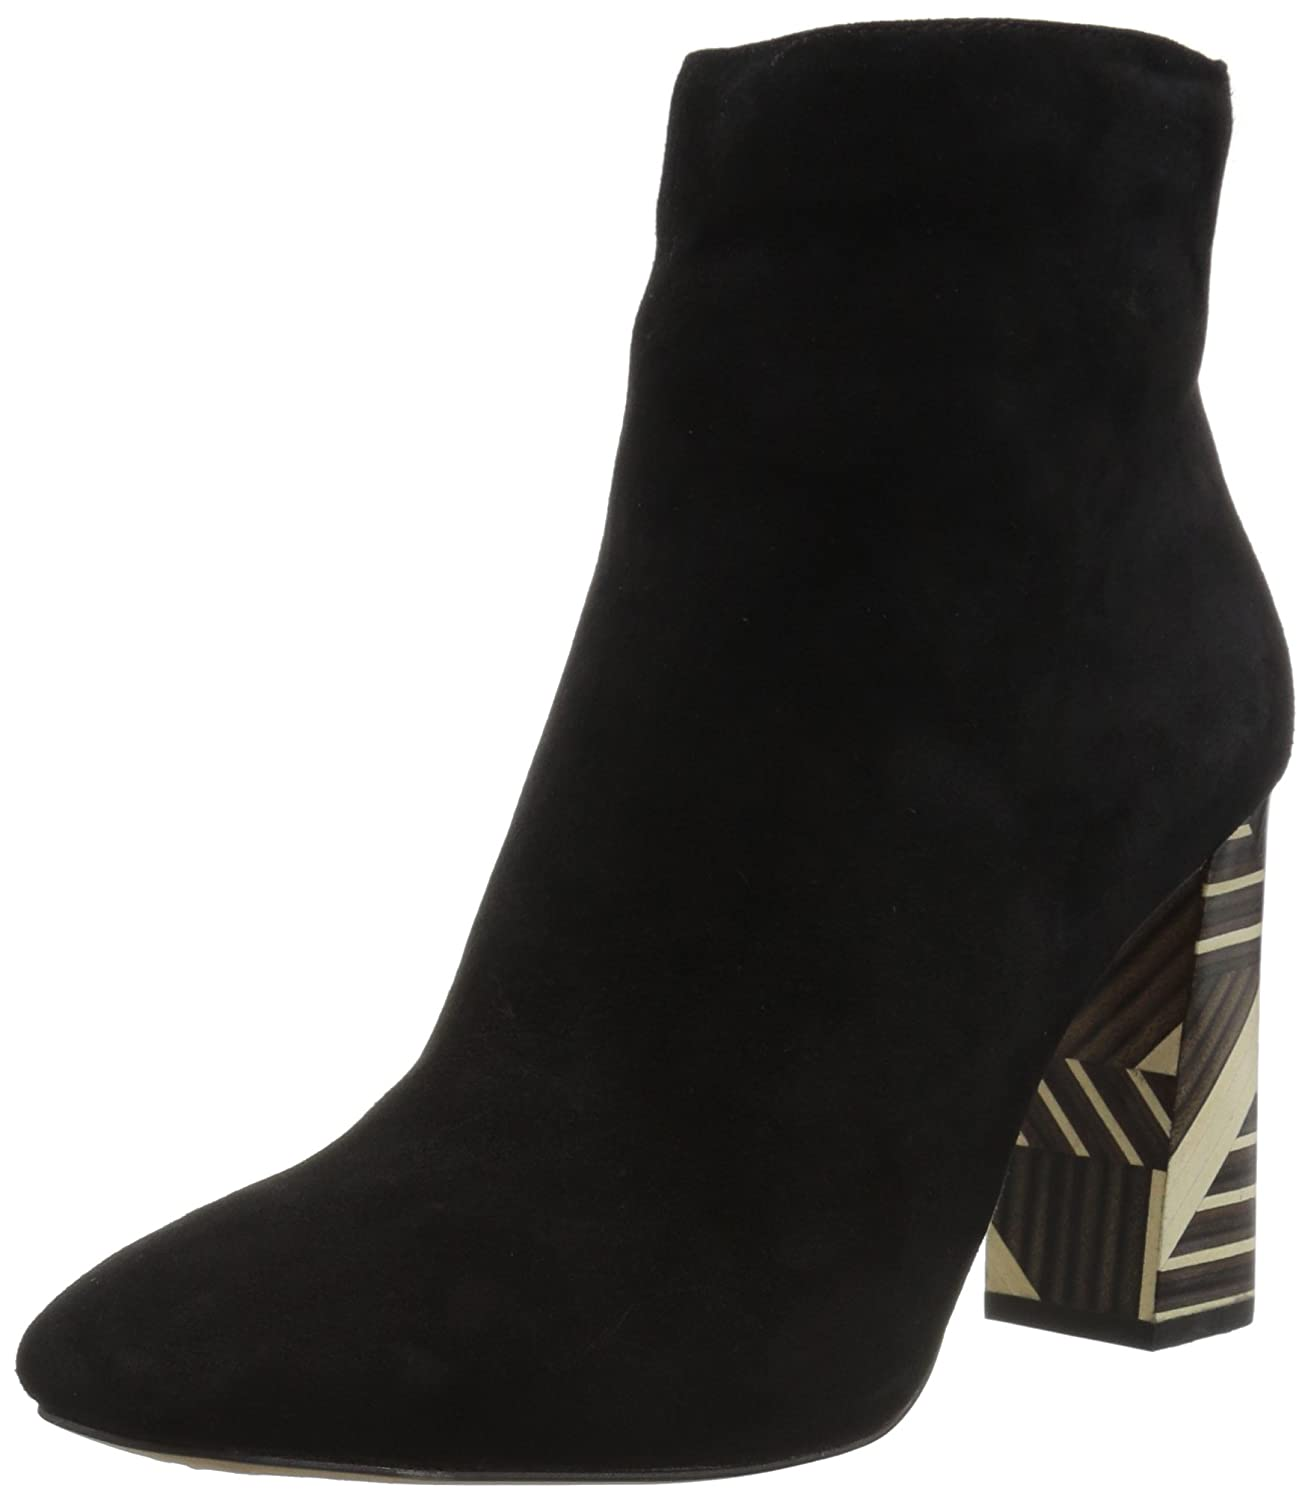 Vince Camuto Women's BRYNTA2 Ankle US Black Boot B072PQY448 7 B(M) US Black Ankle 484428